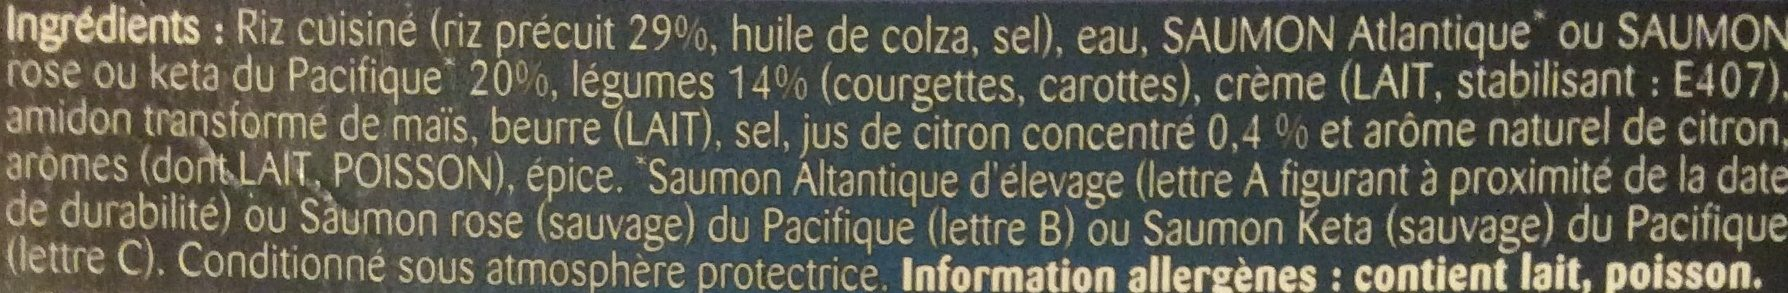 Les Cocottes Saumon au Citron - Ingredients